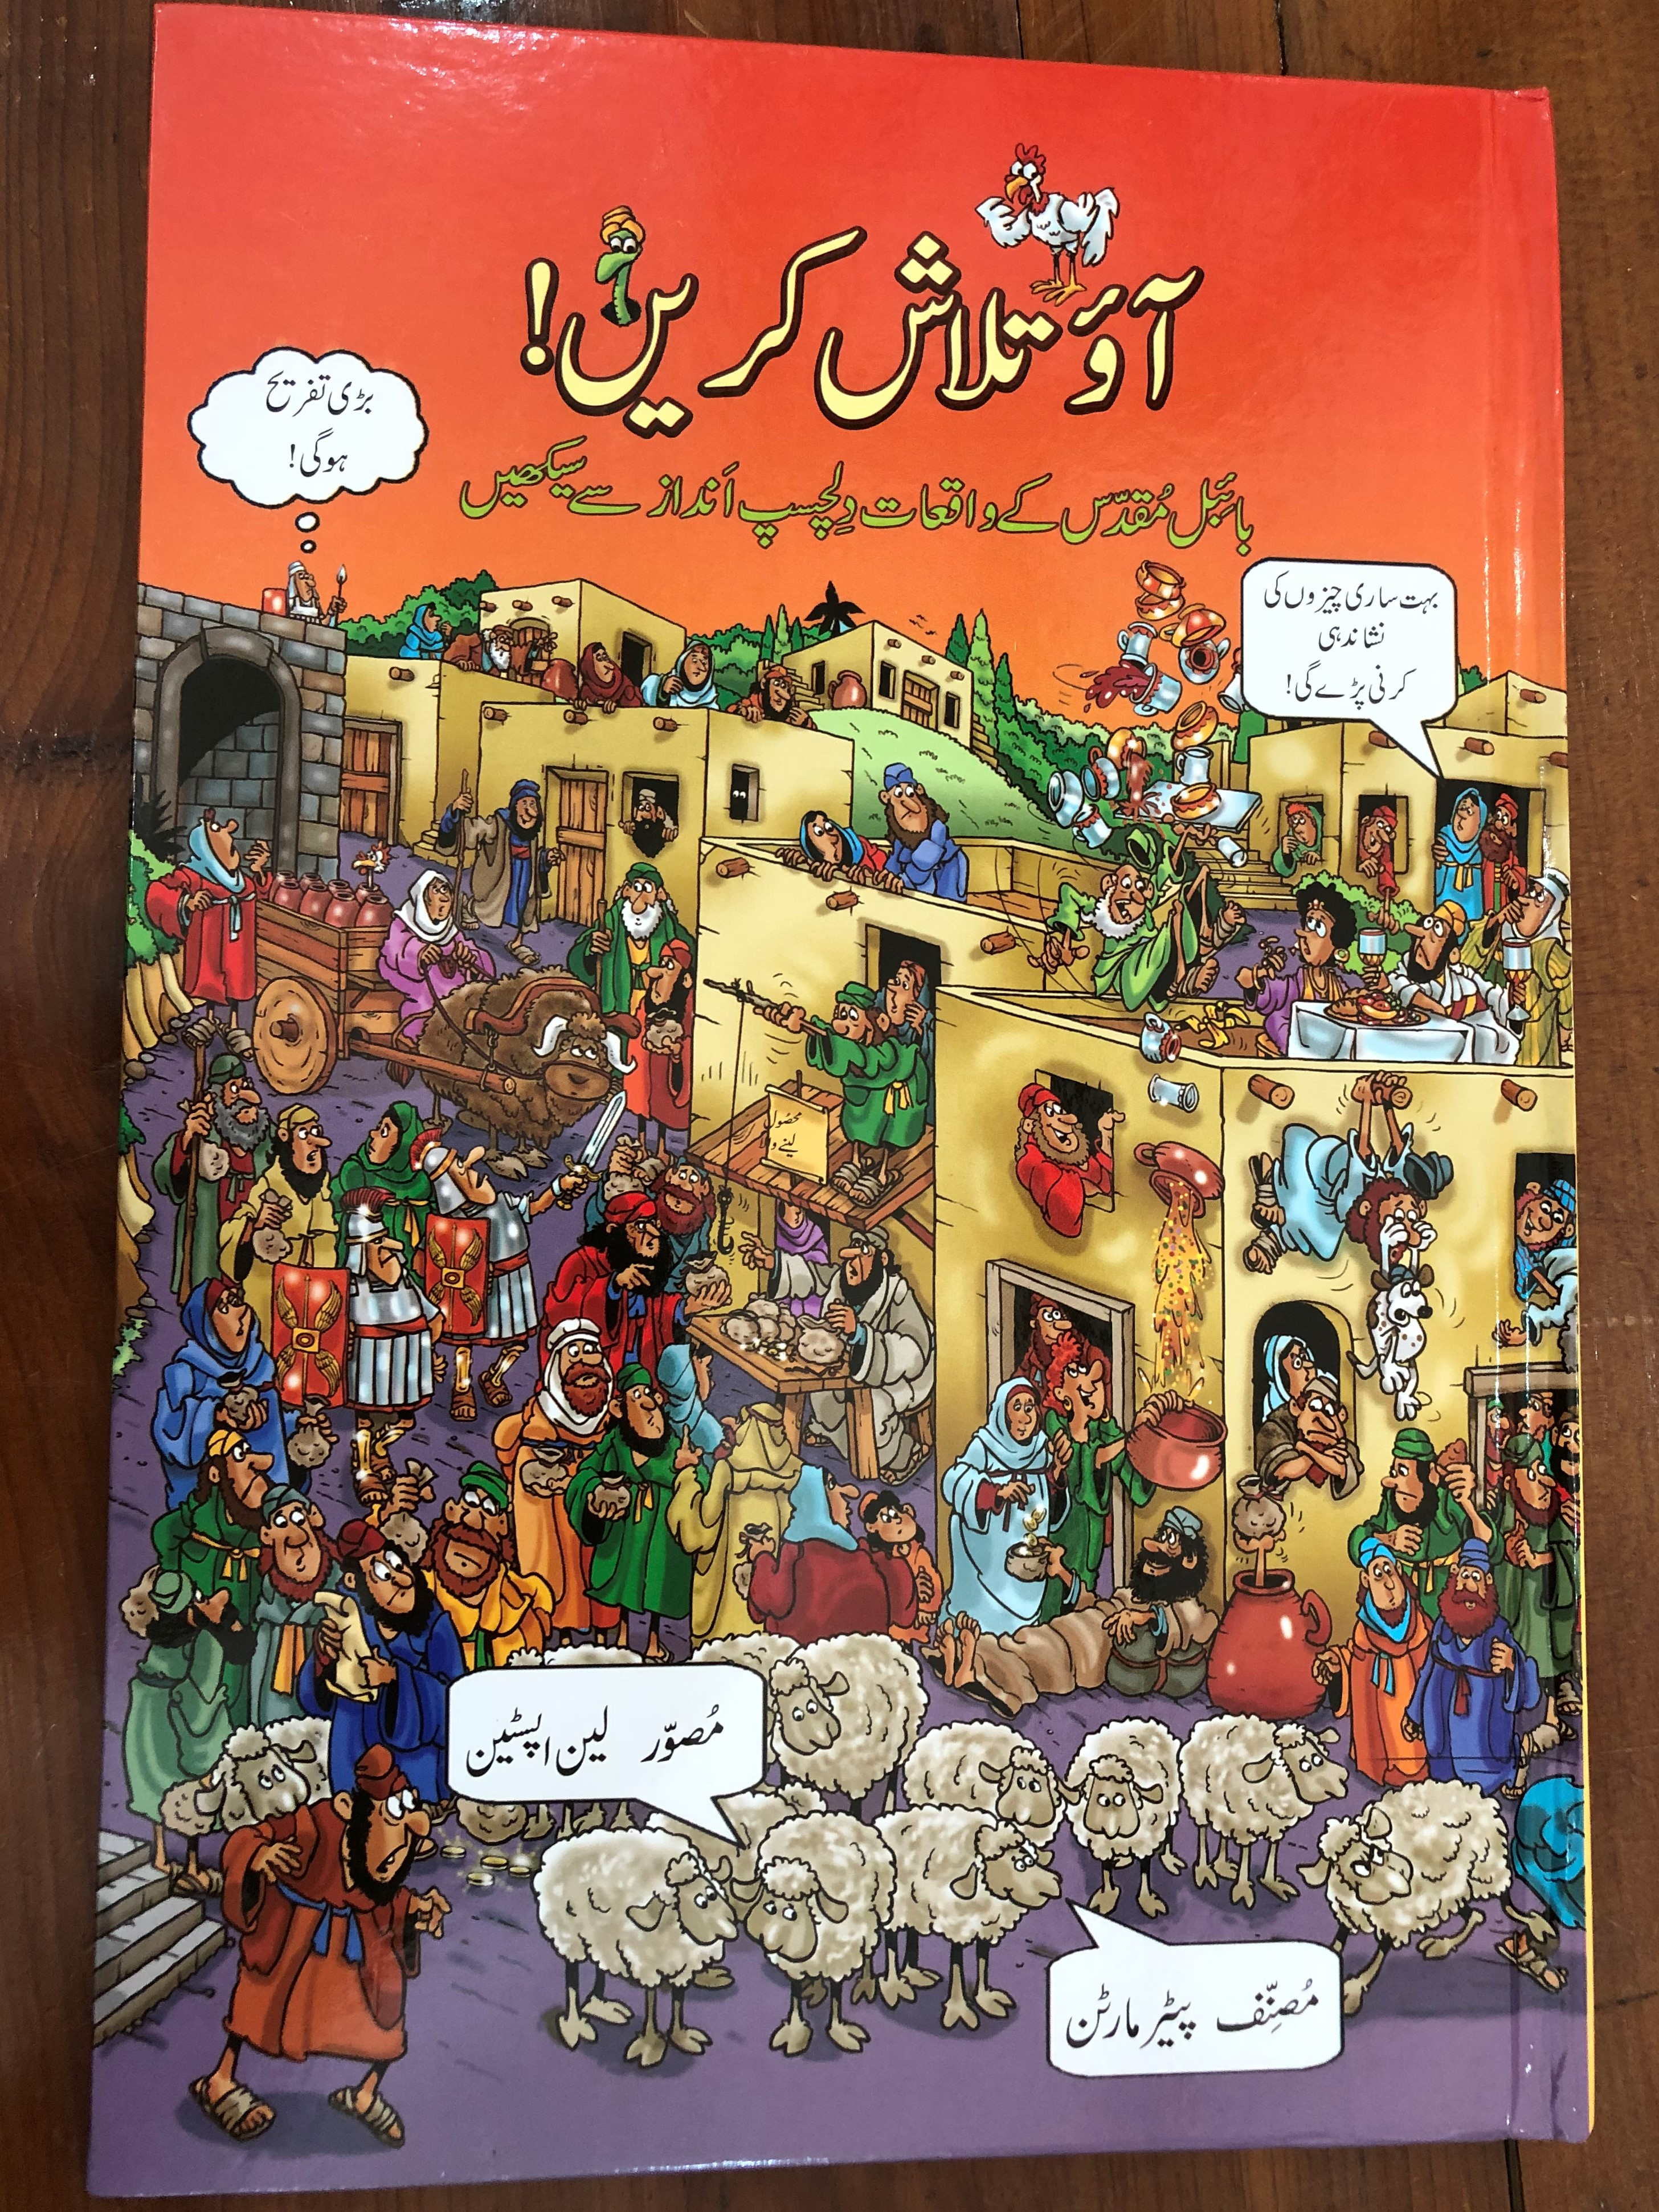 -the-lion-picture-puzzle-bible-in-urdu-language-by-peter-martin-illustrations-len-epstein-pakistan-bible-society-catholic-bible-comission-pakistan-hardcover-2017-1-.jpg